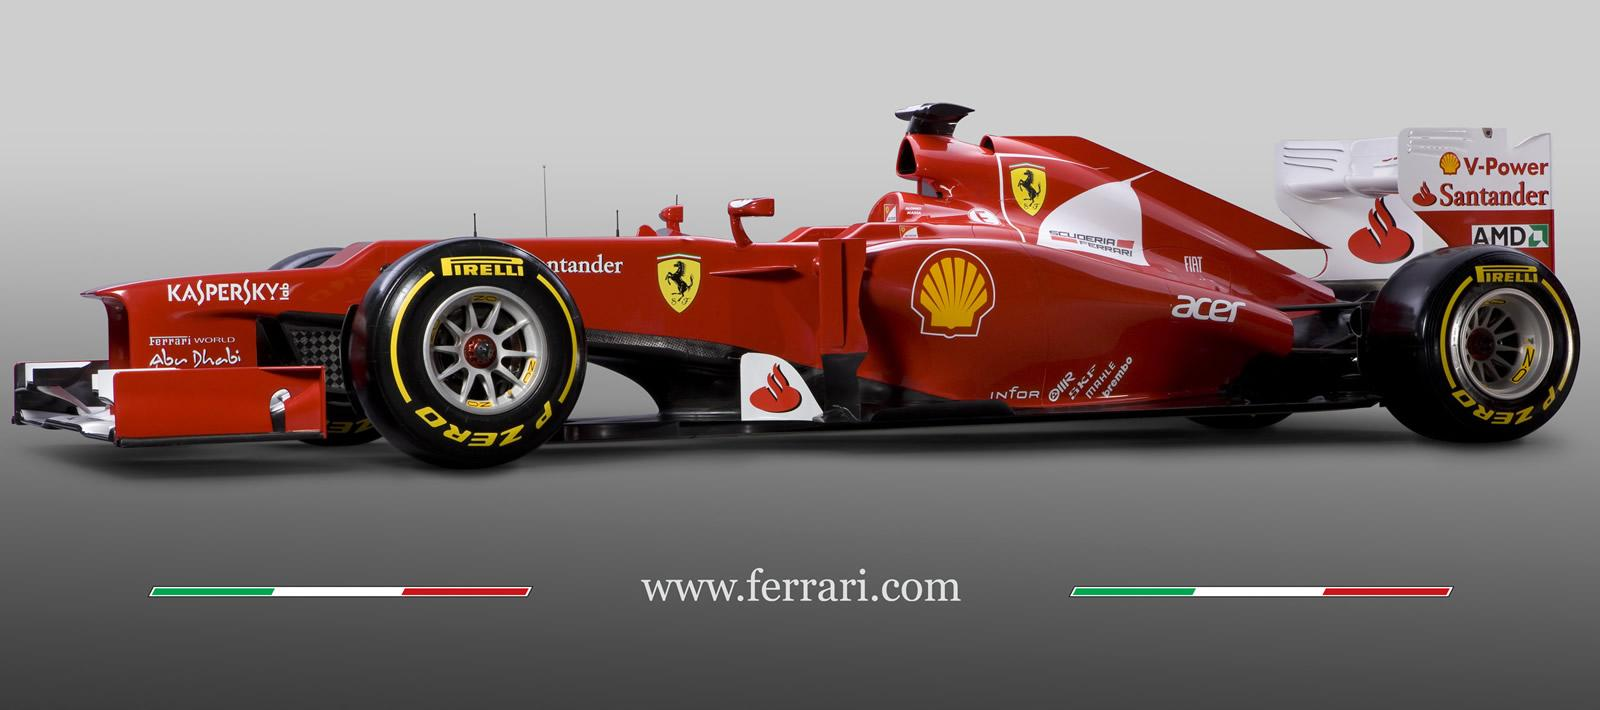 2012 F1 Season Ferrari F2012 Picture 64148